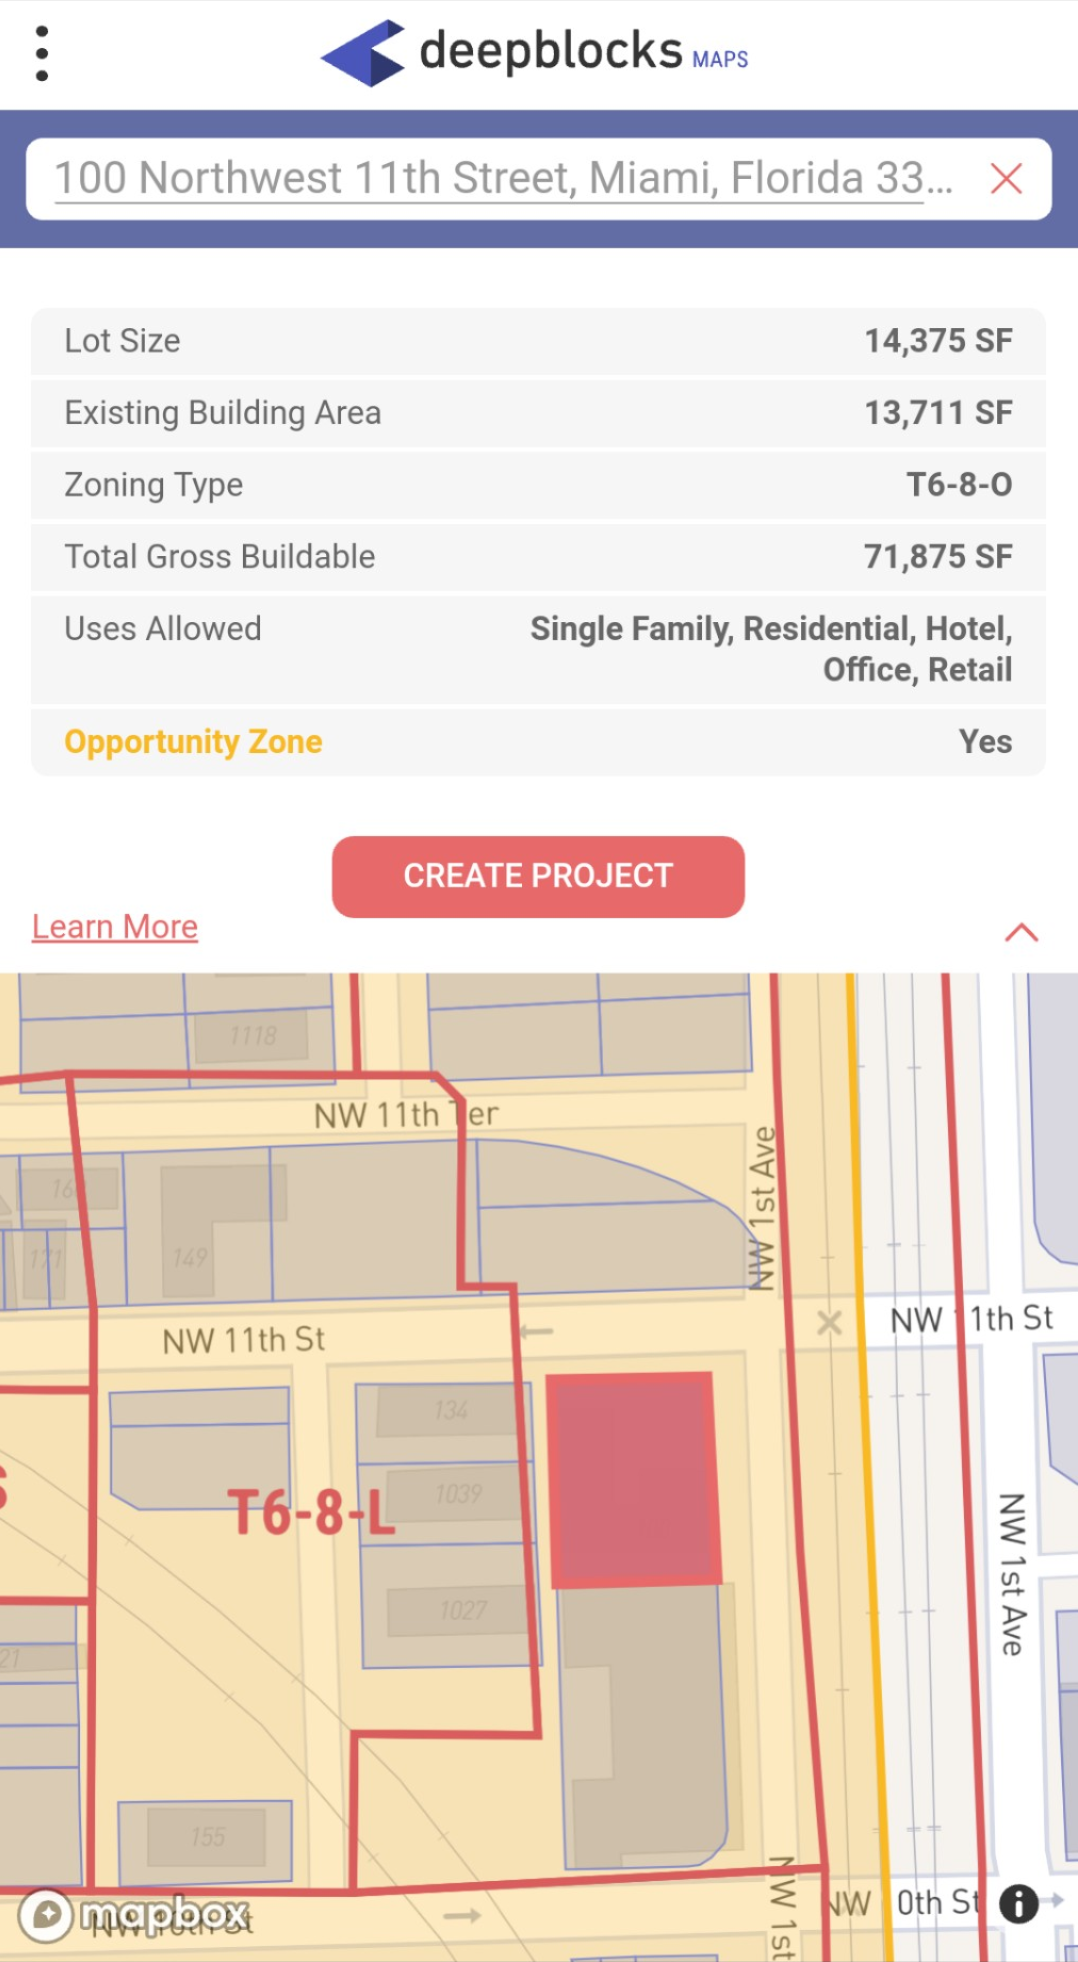 Using    Deepblocks Maps    to quickly assess property potential.